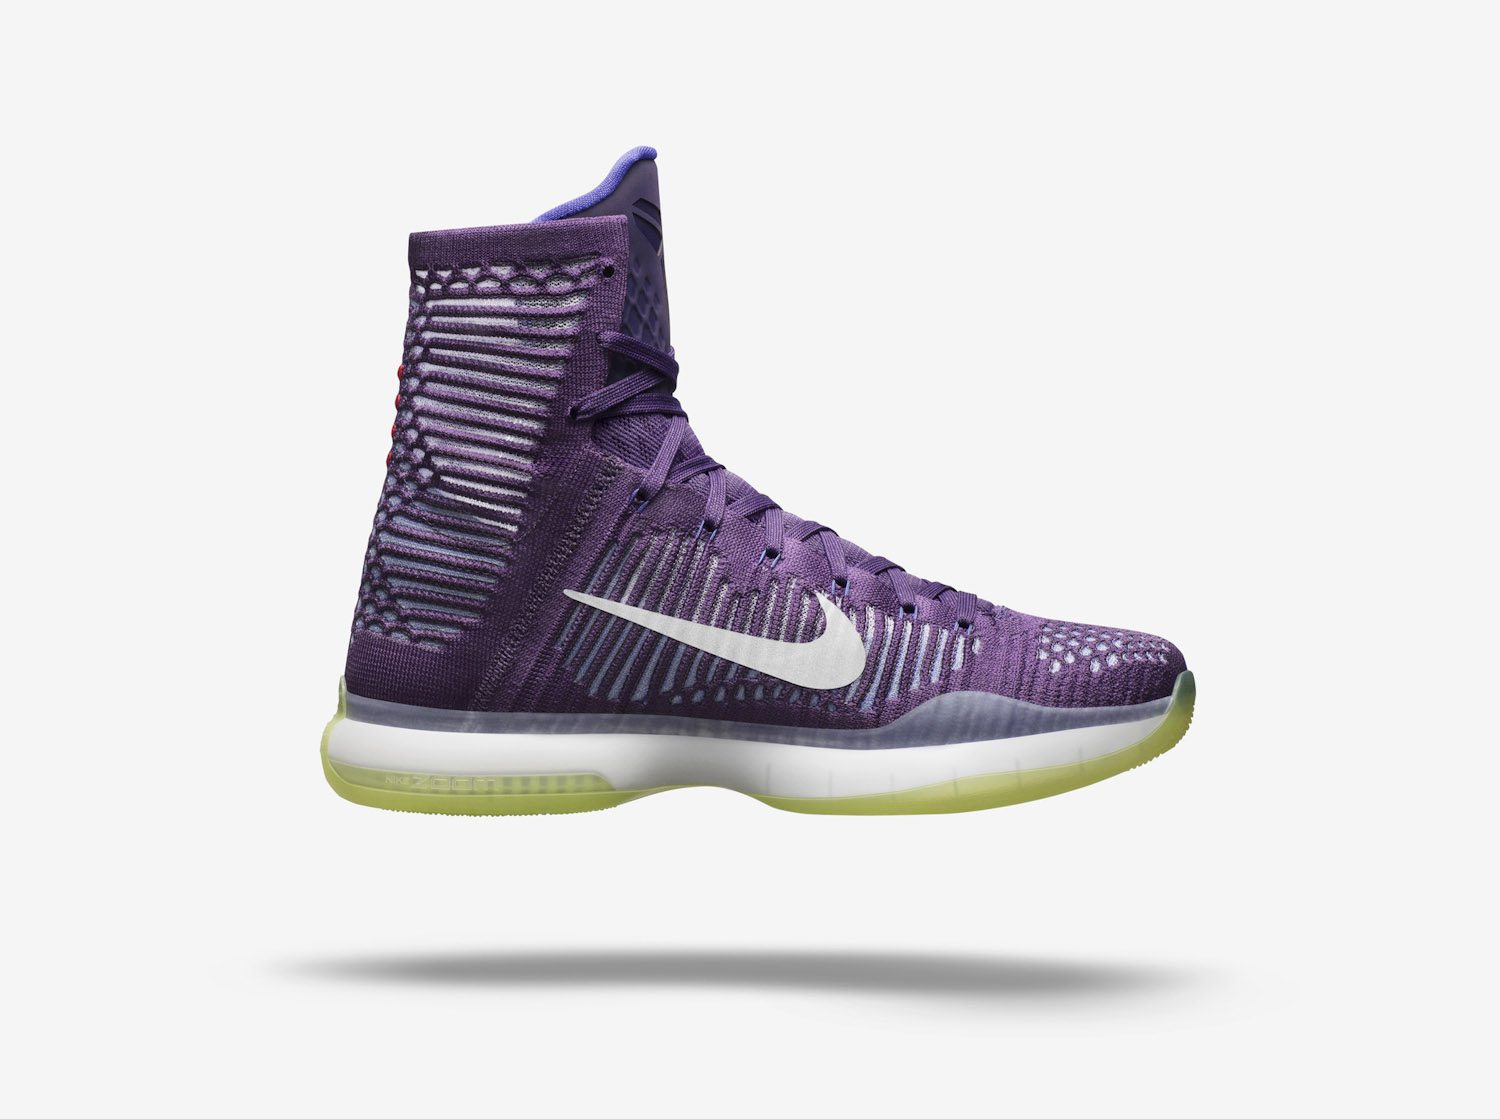 Nike Basketball Elite Series Collections 10